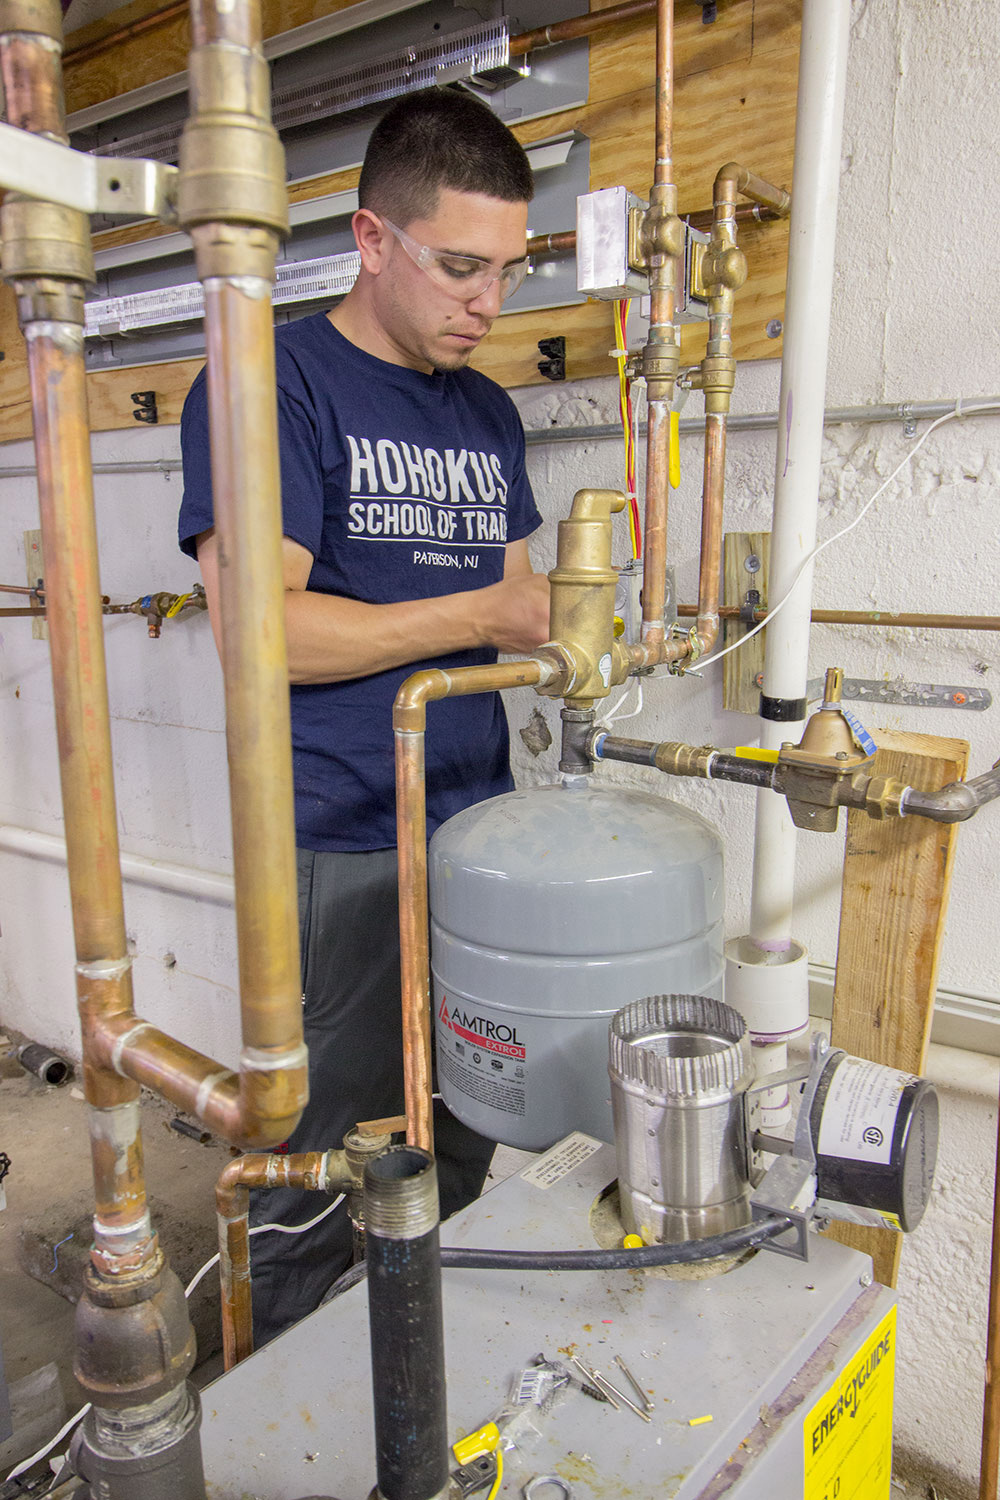 Plumbing apprenticeship student practices piping